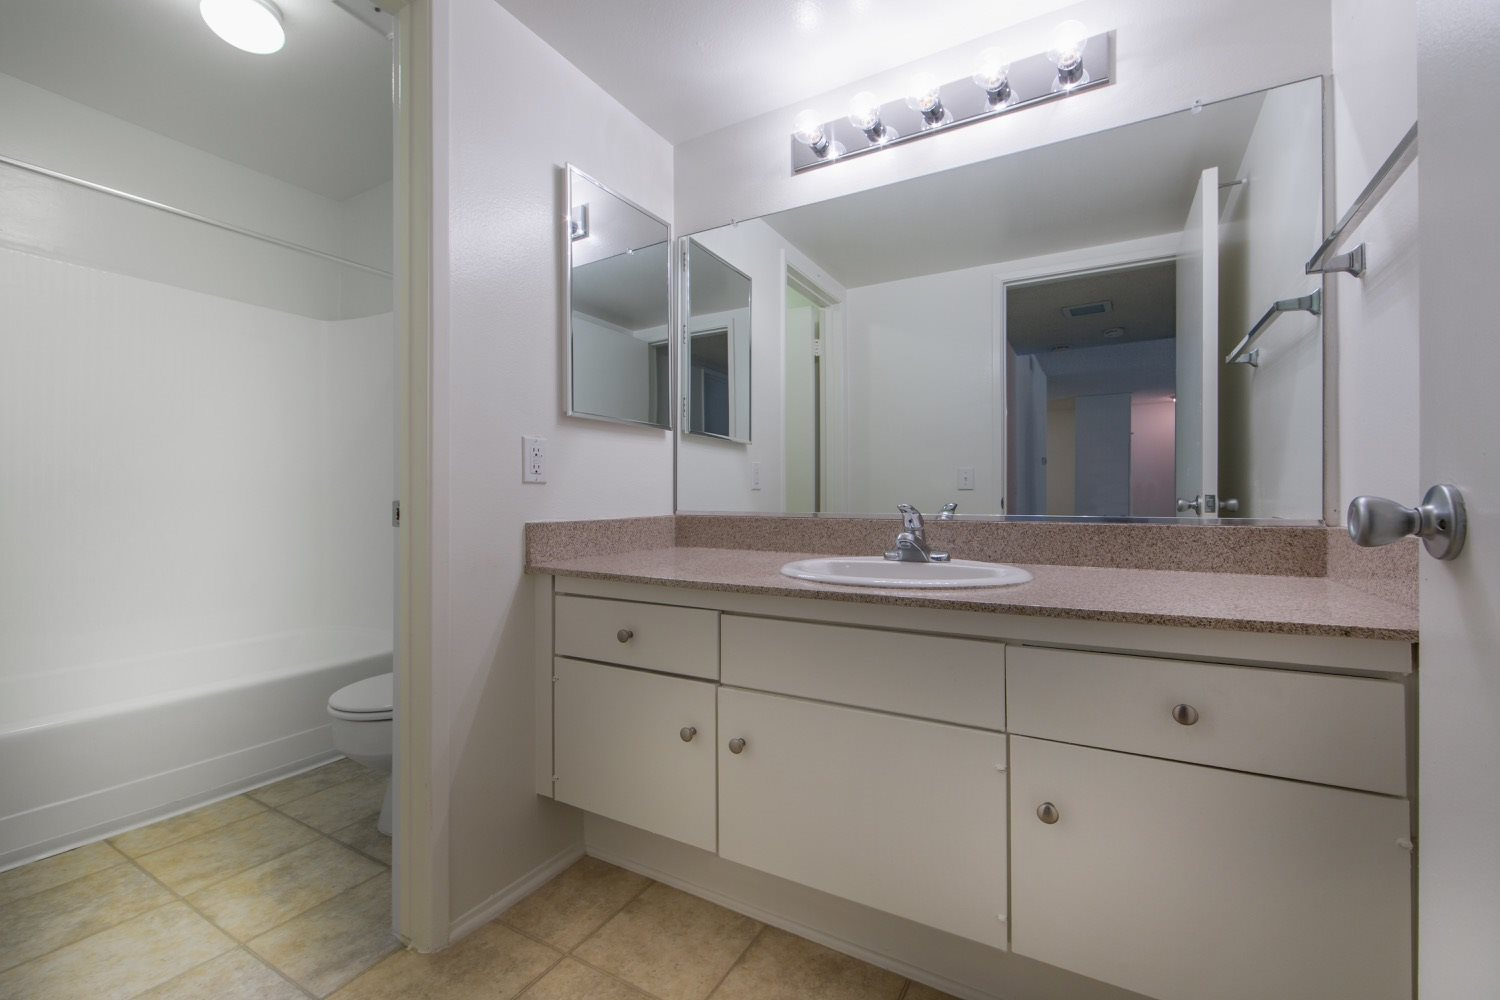 huntington-beach-apartments-bathroom